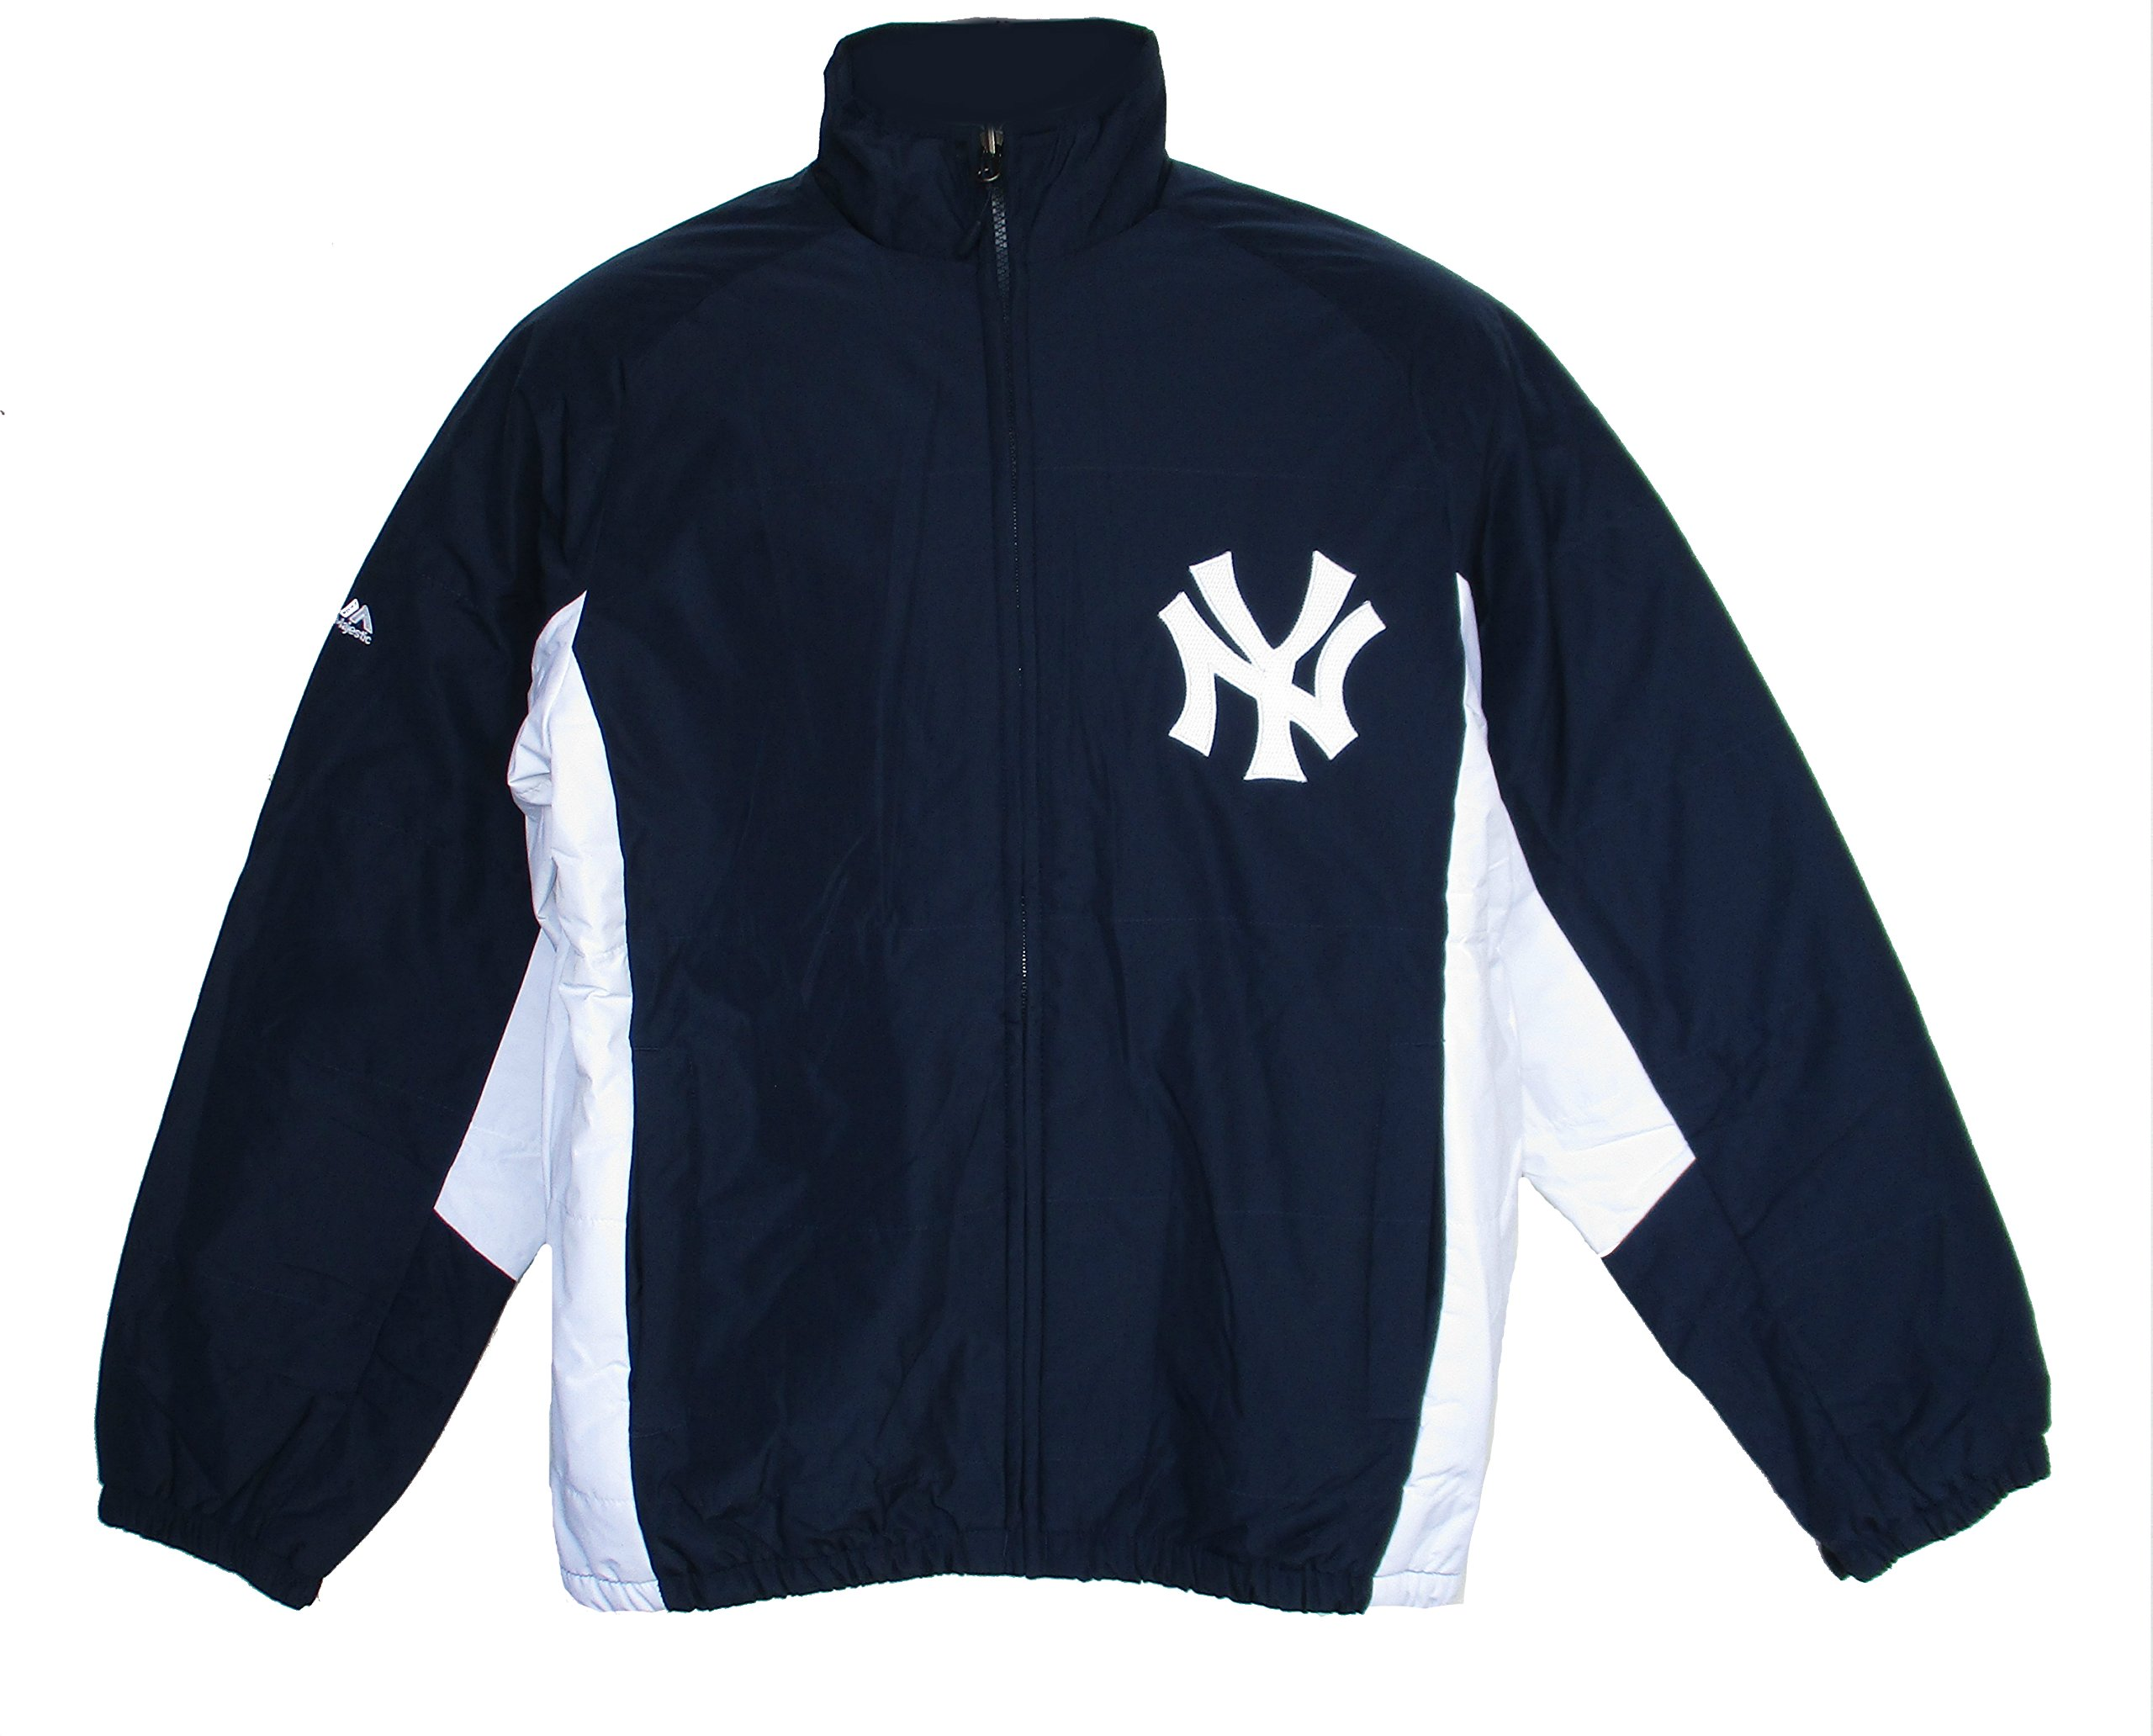 2c8dbe0d Cheap Yankees Jacket Majestic, find Yankees Jacket Majestic deals on ...